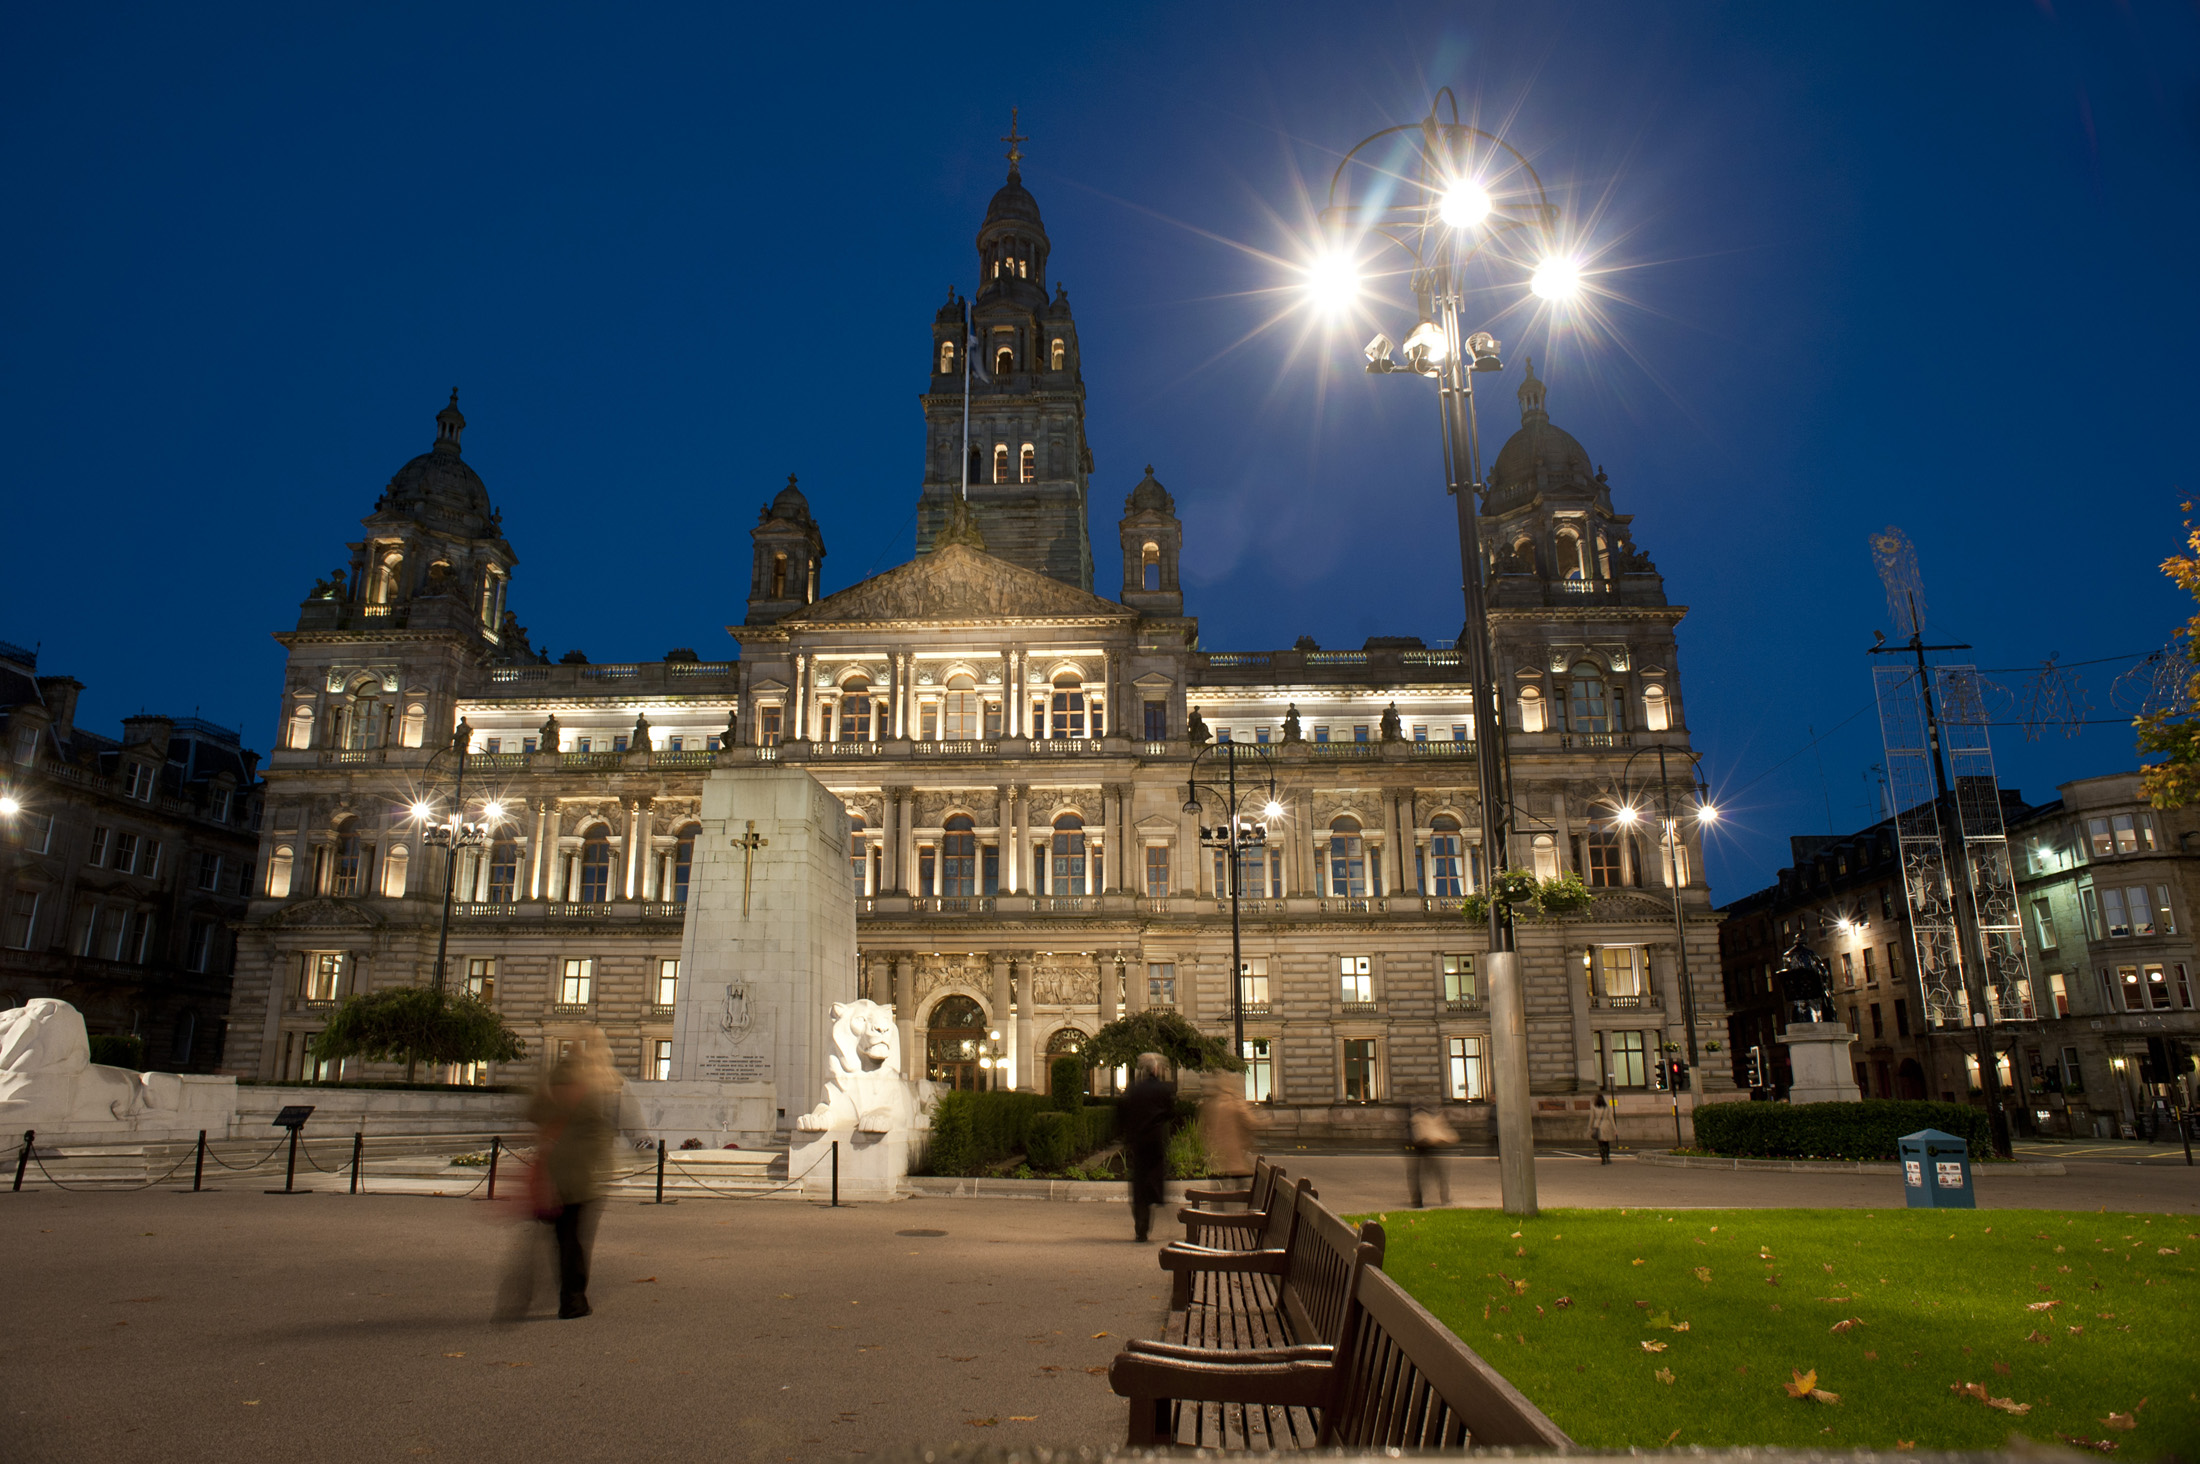 George Square, Glasgow at night looking towards the historical external facade of the Glasgow City Council building with pedestrians crossing the square